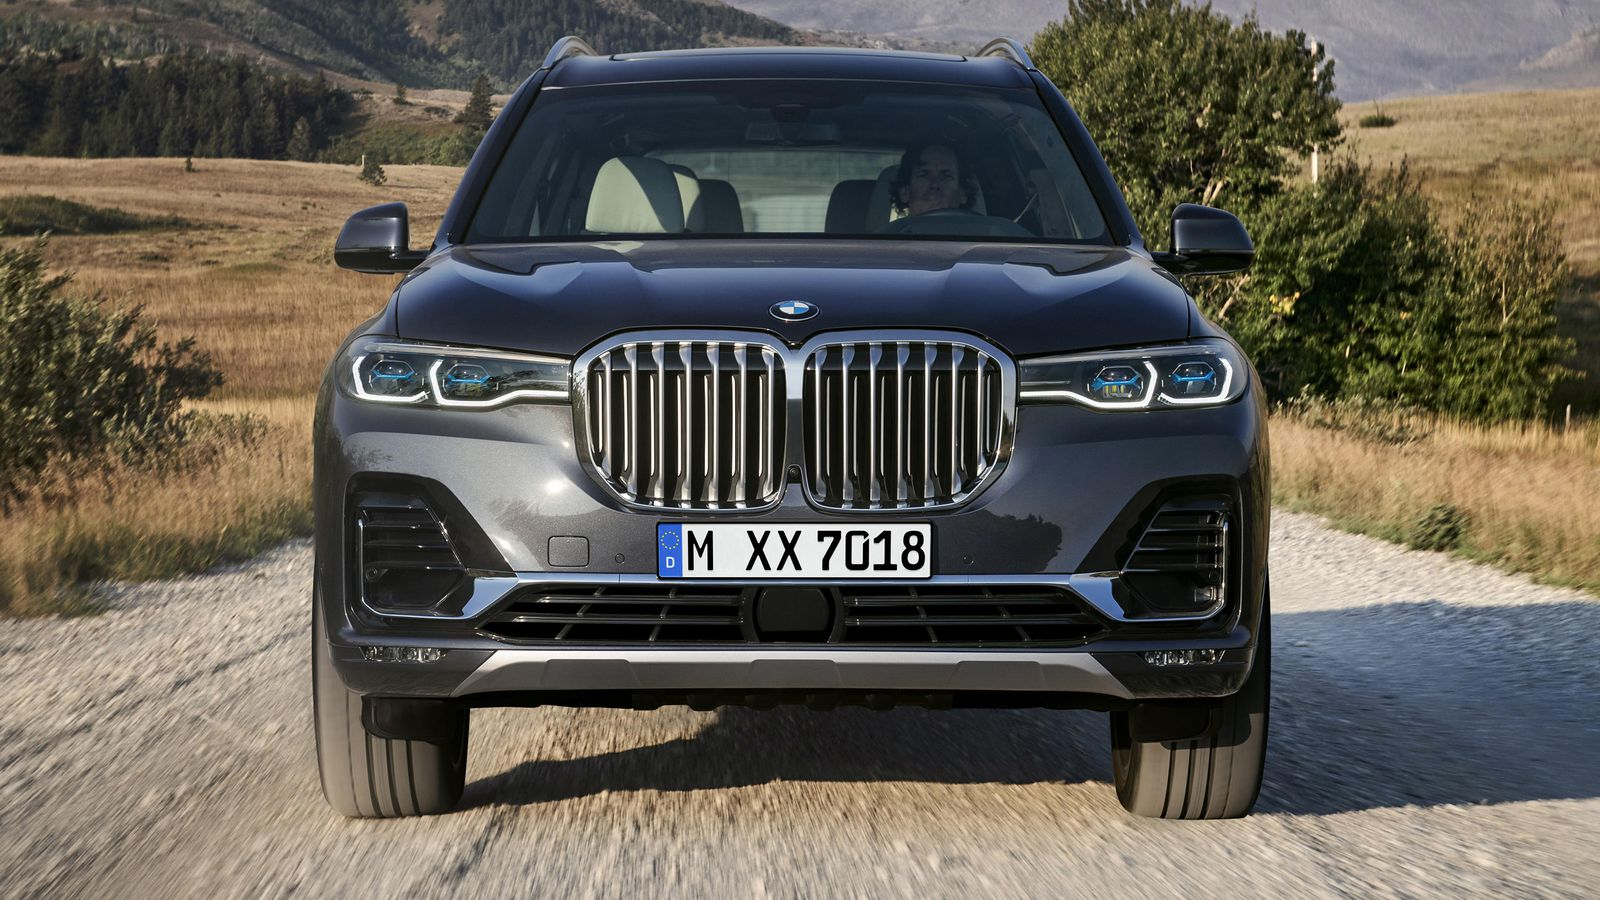 28 A 2019 BMW X7 Suv Series Rumors